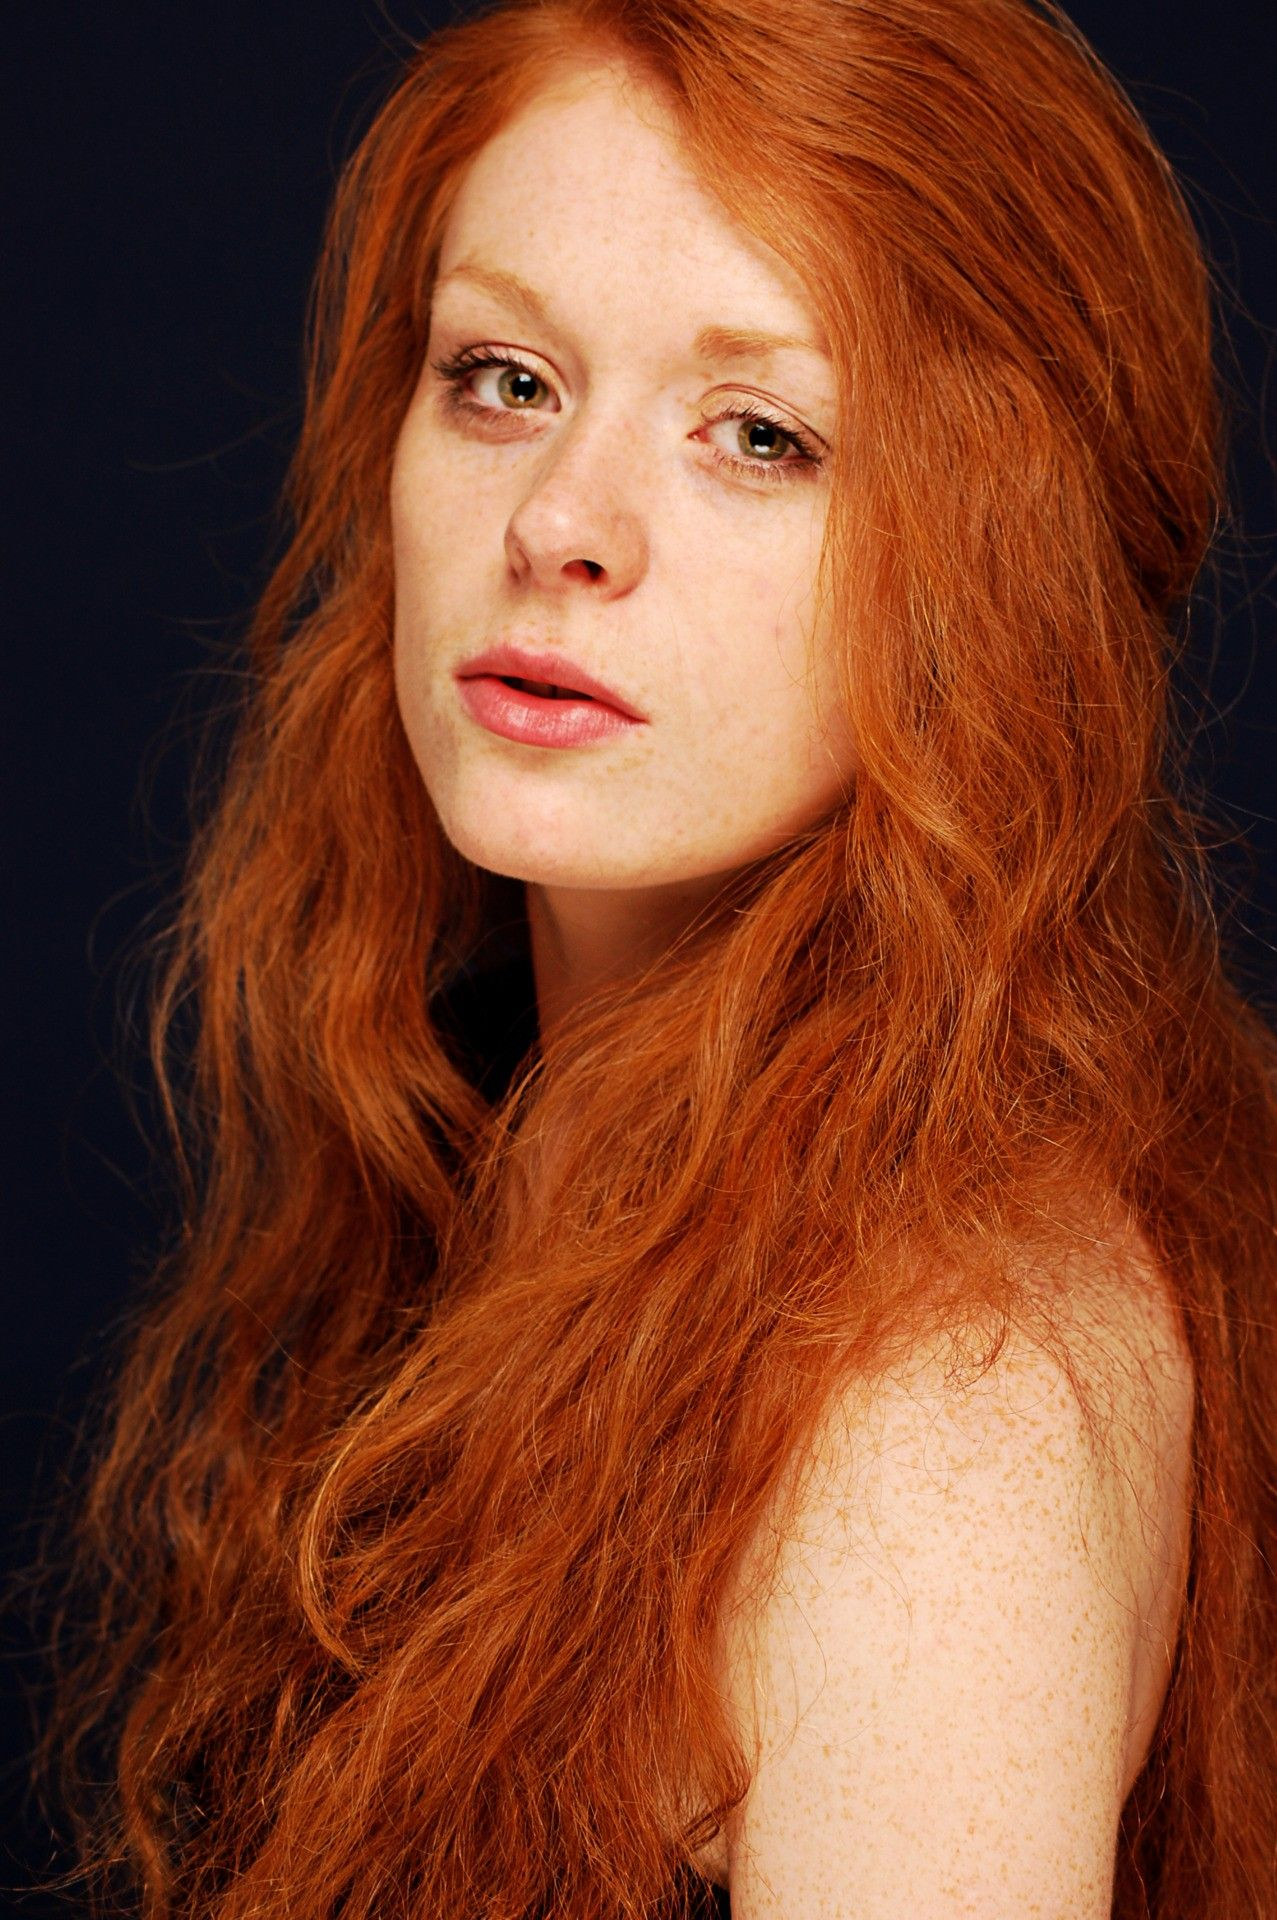 Redheads Freckles Pale Skin Blue Eyes 5 Image By Pirate Cove